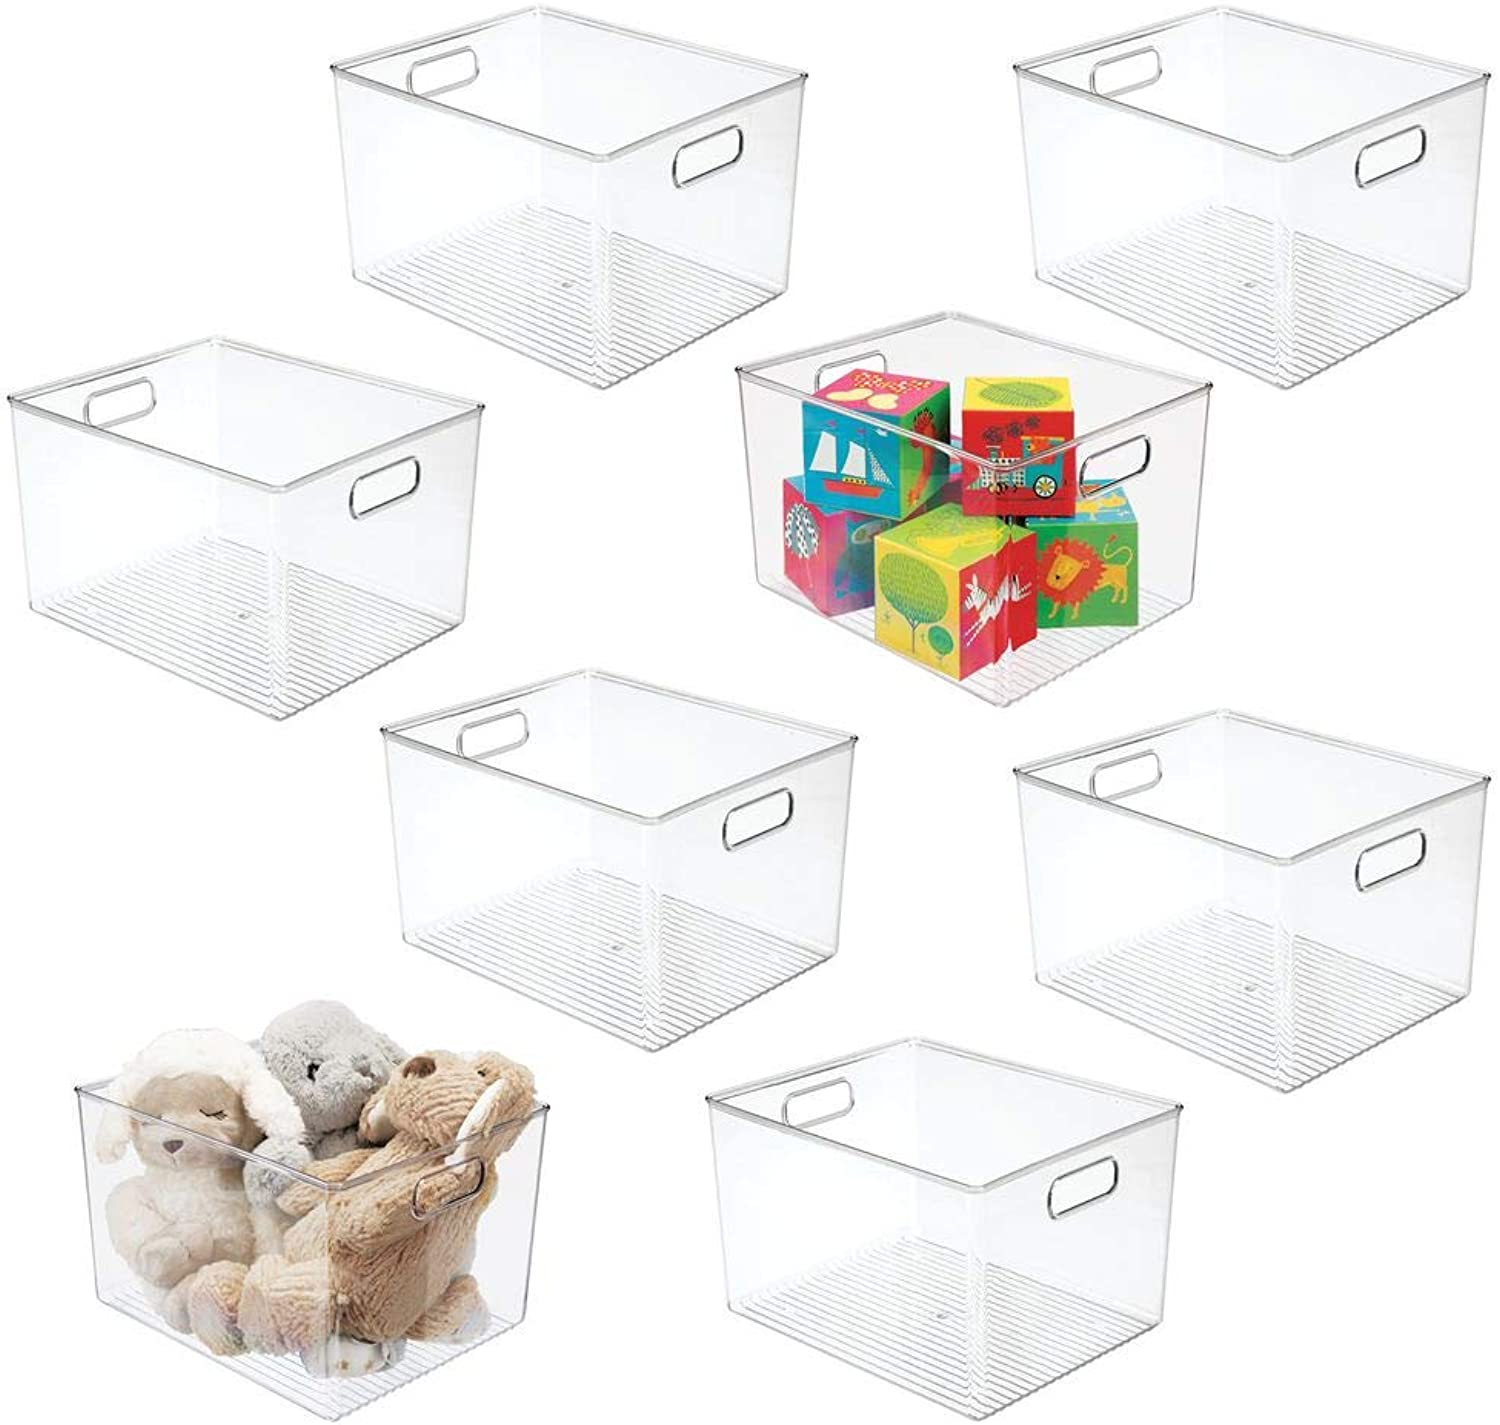 MDesign Deep Plastic Home Storage Organizer Bin for Cube Furniture Shelving in Office, Entryway, Closet, Cabinet, Bedroom, Laundry Room, Nursery, Kids Toy Room - 12  x 10  x 8  - 8 Pack - Clear